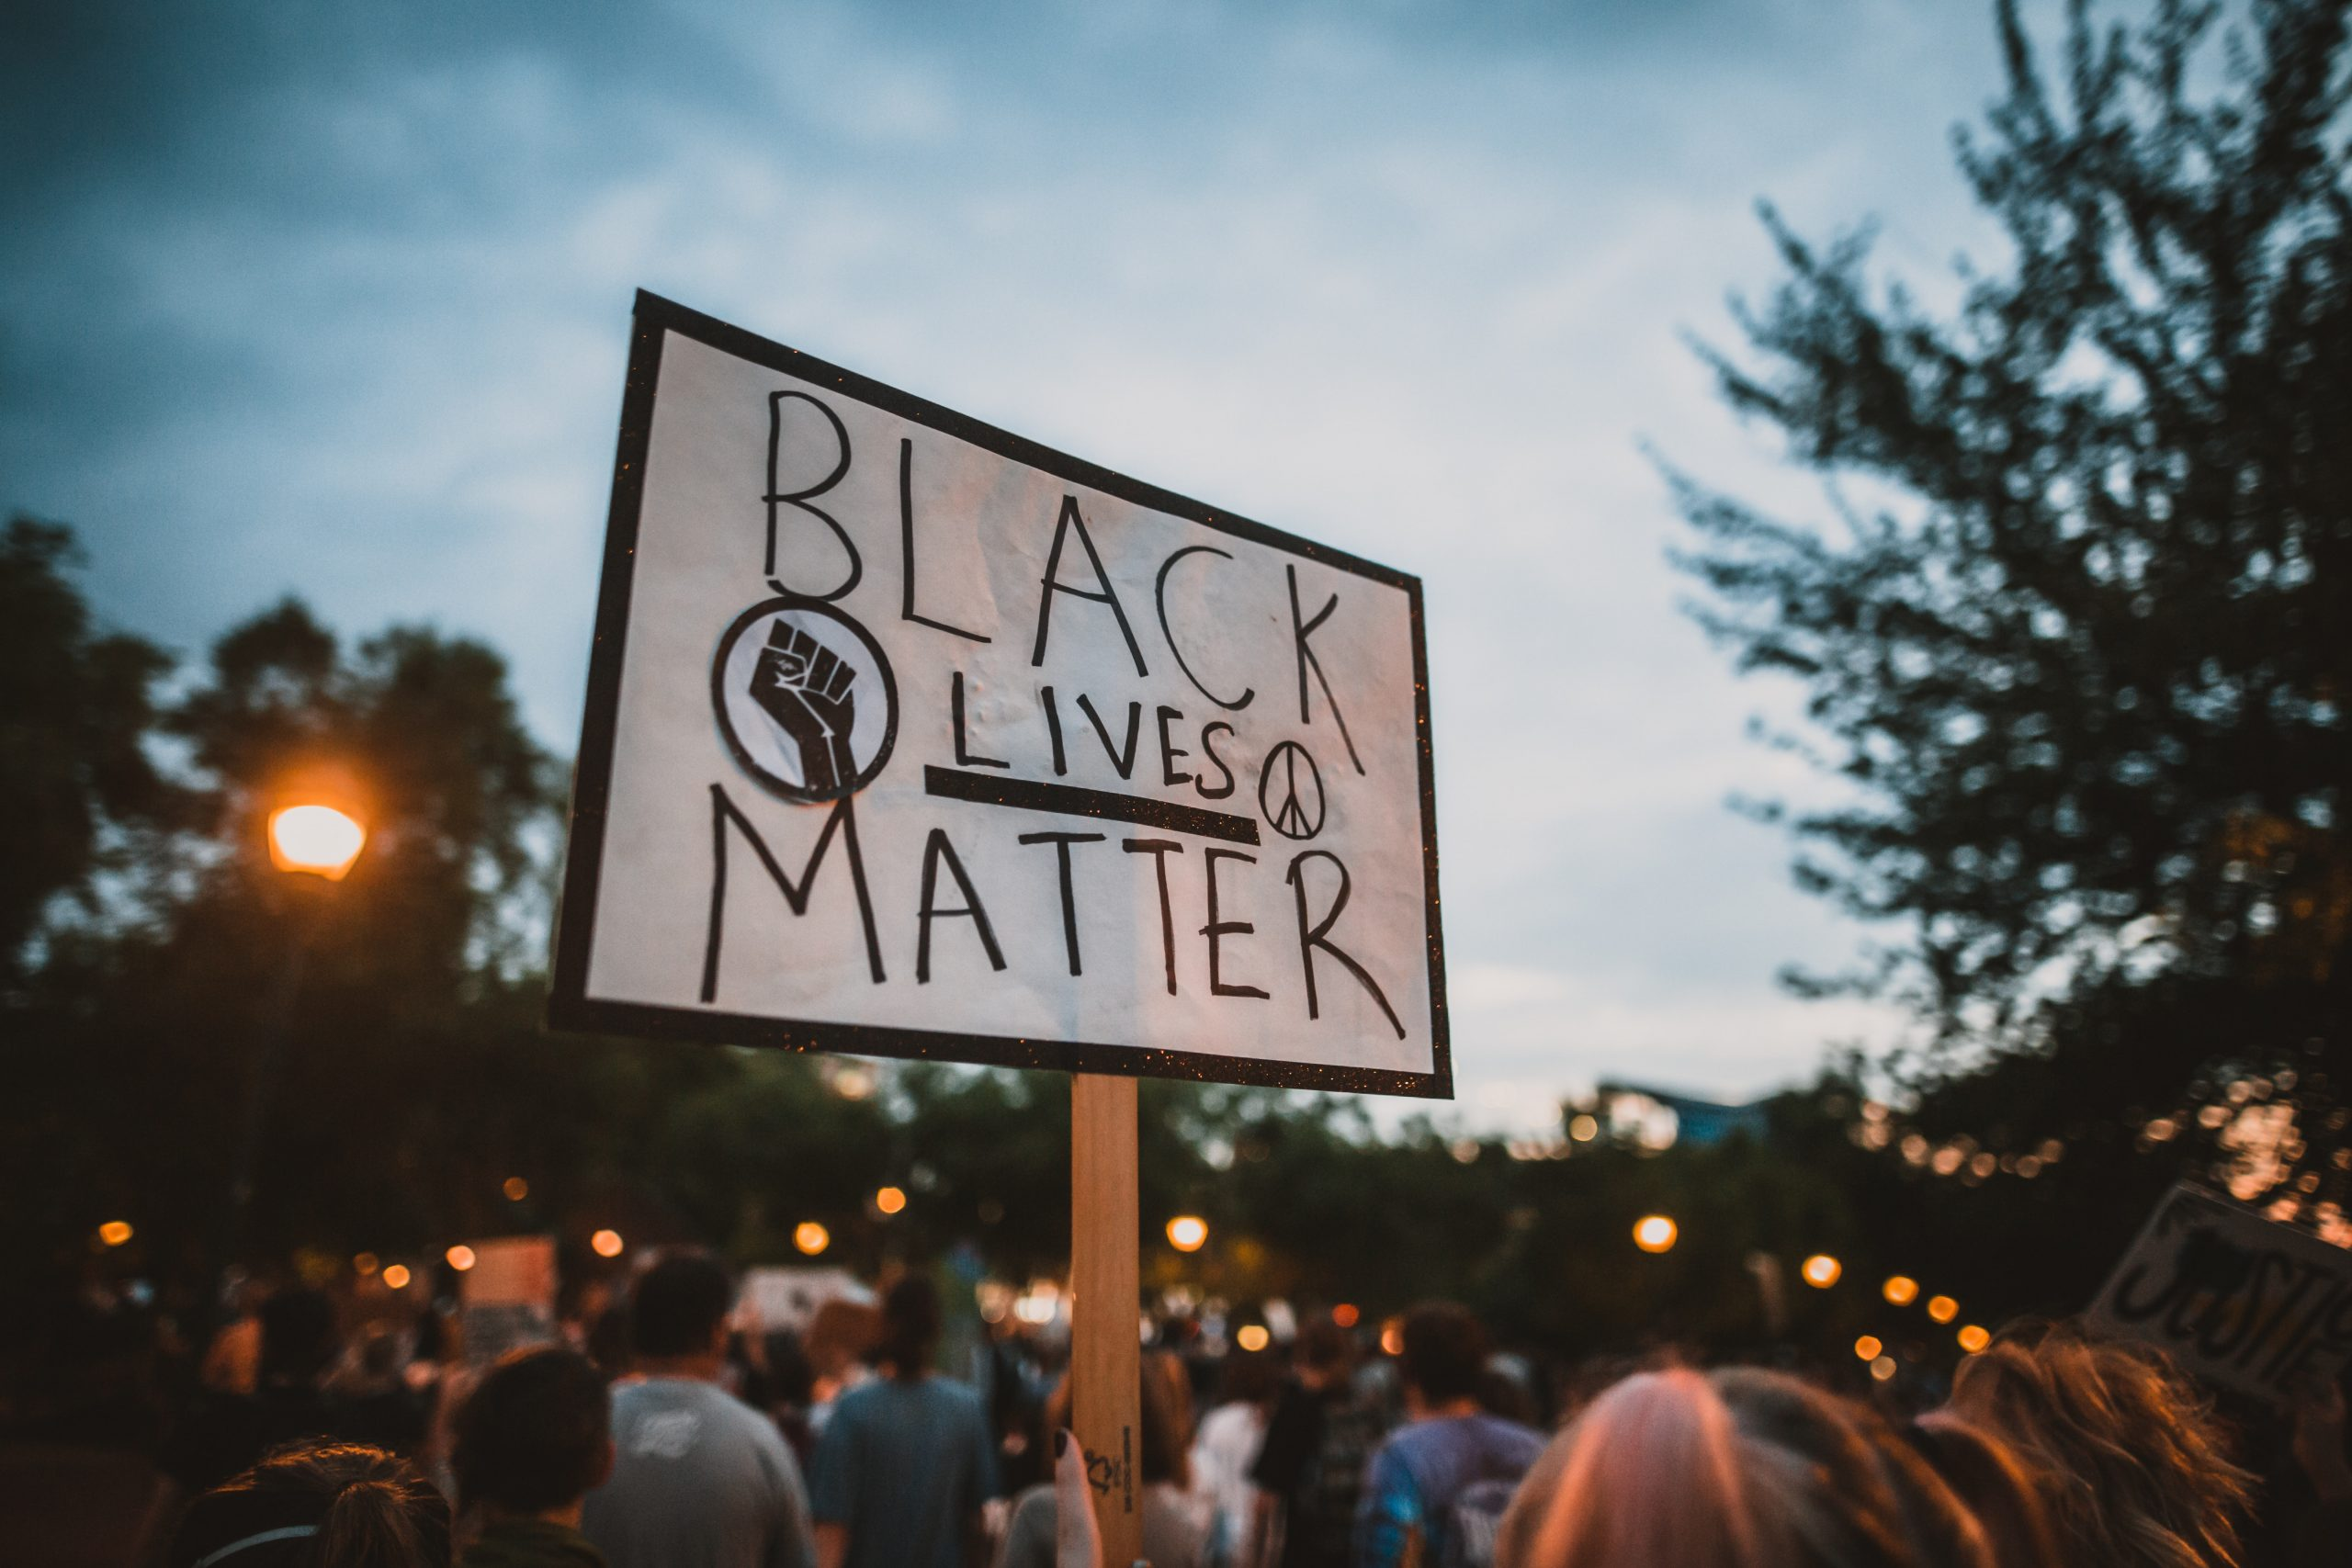 Person holding up black lives matter sign at protest